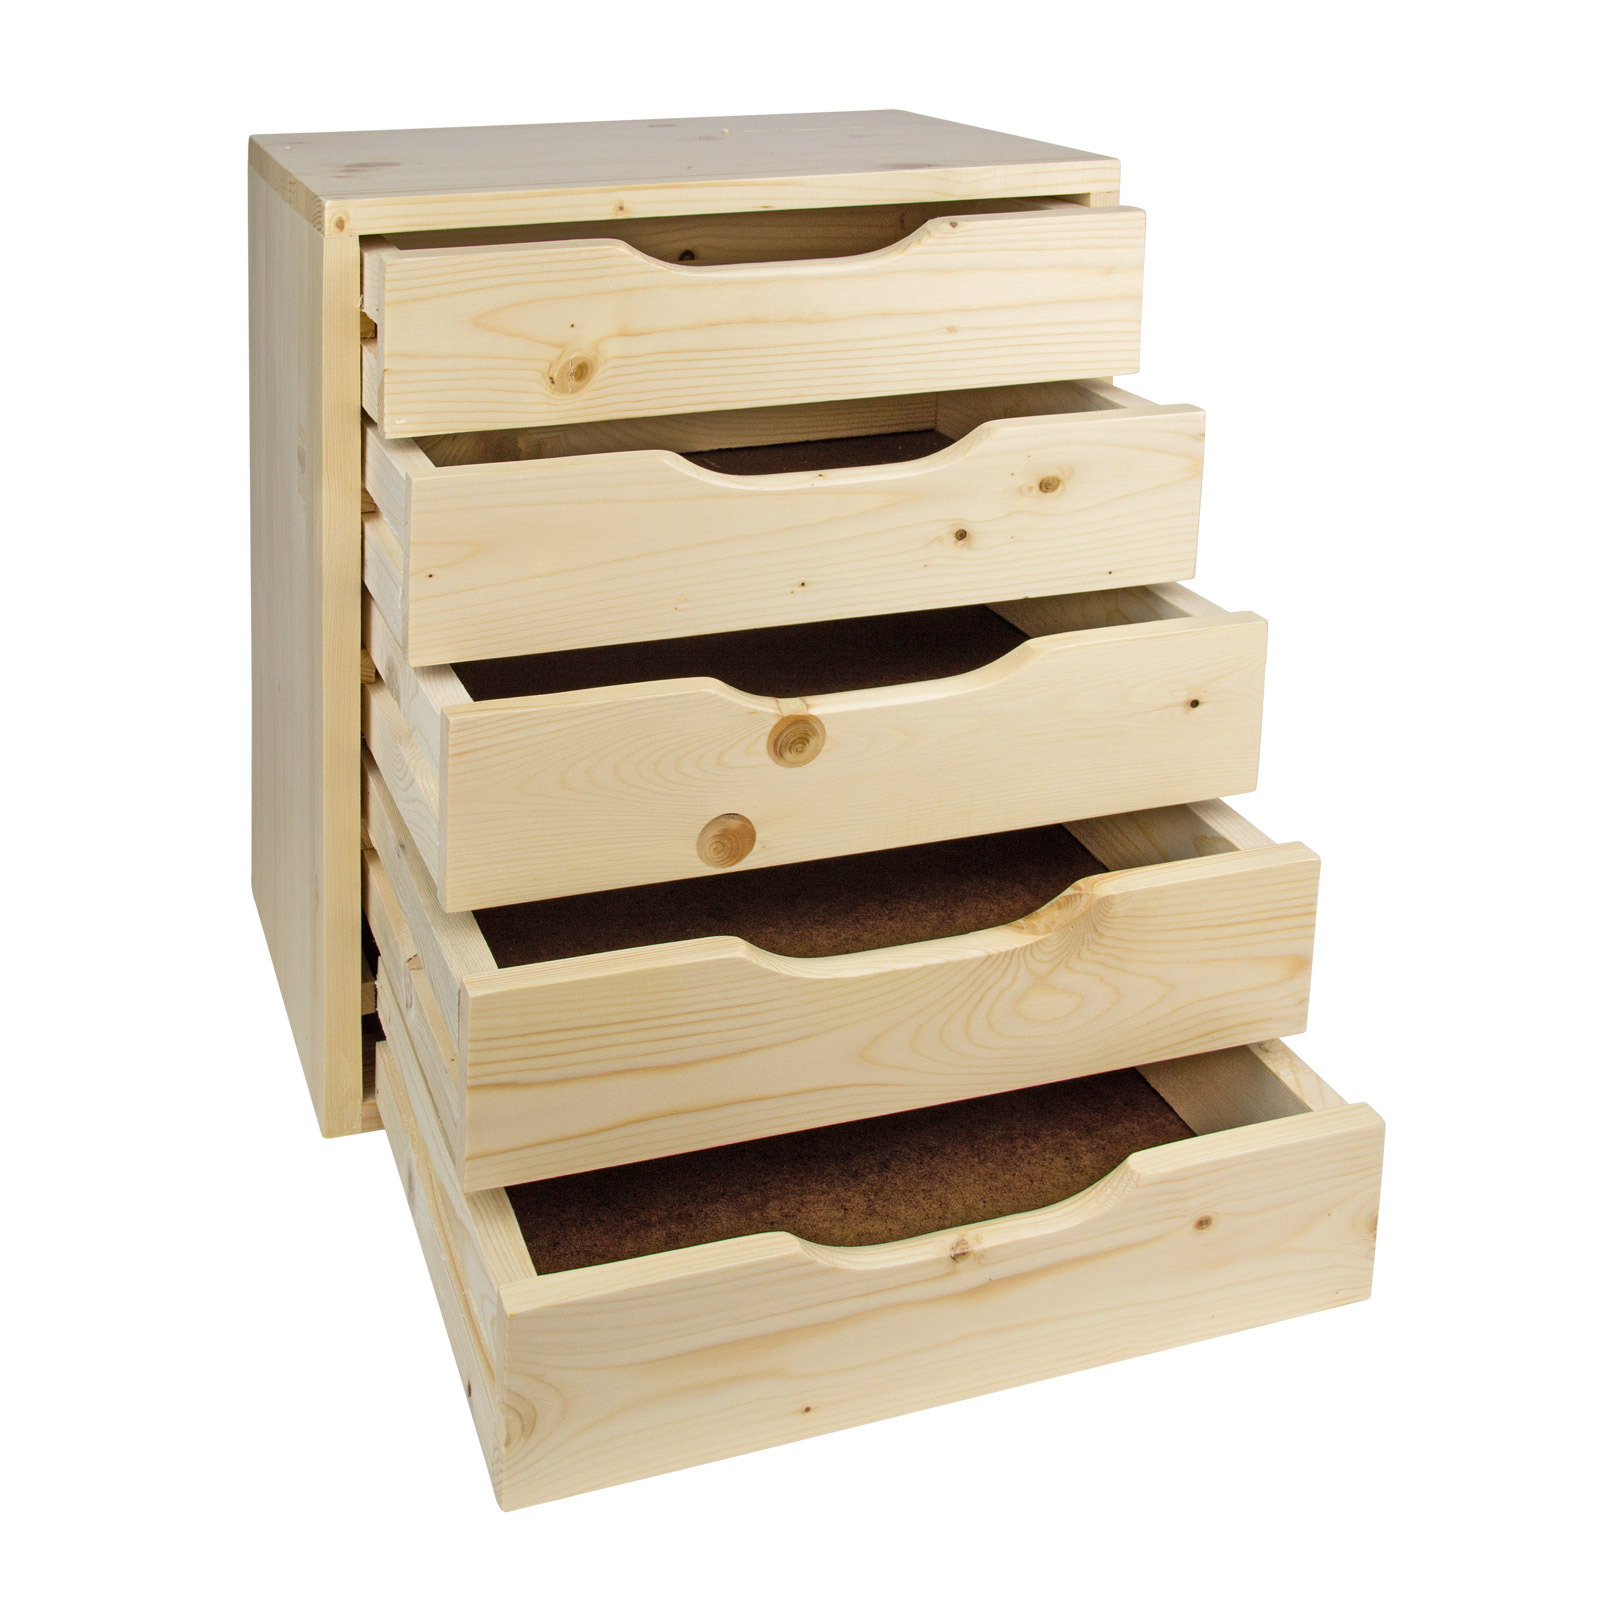 919191 holz schubladenbox schubladen ablagebox holzkiste box sb5 32 5x25x7 40538 ebay. Black Bedroom Furniture Sets. Home Design Ideas